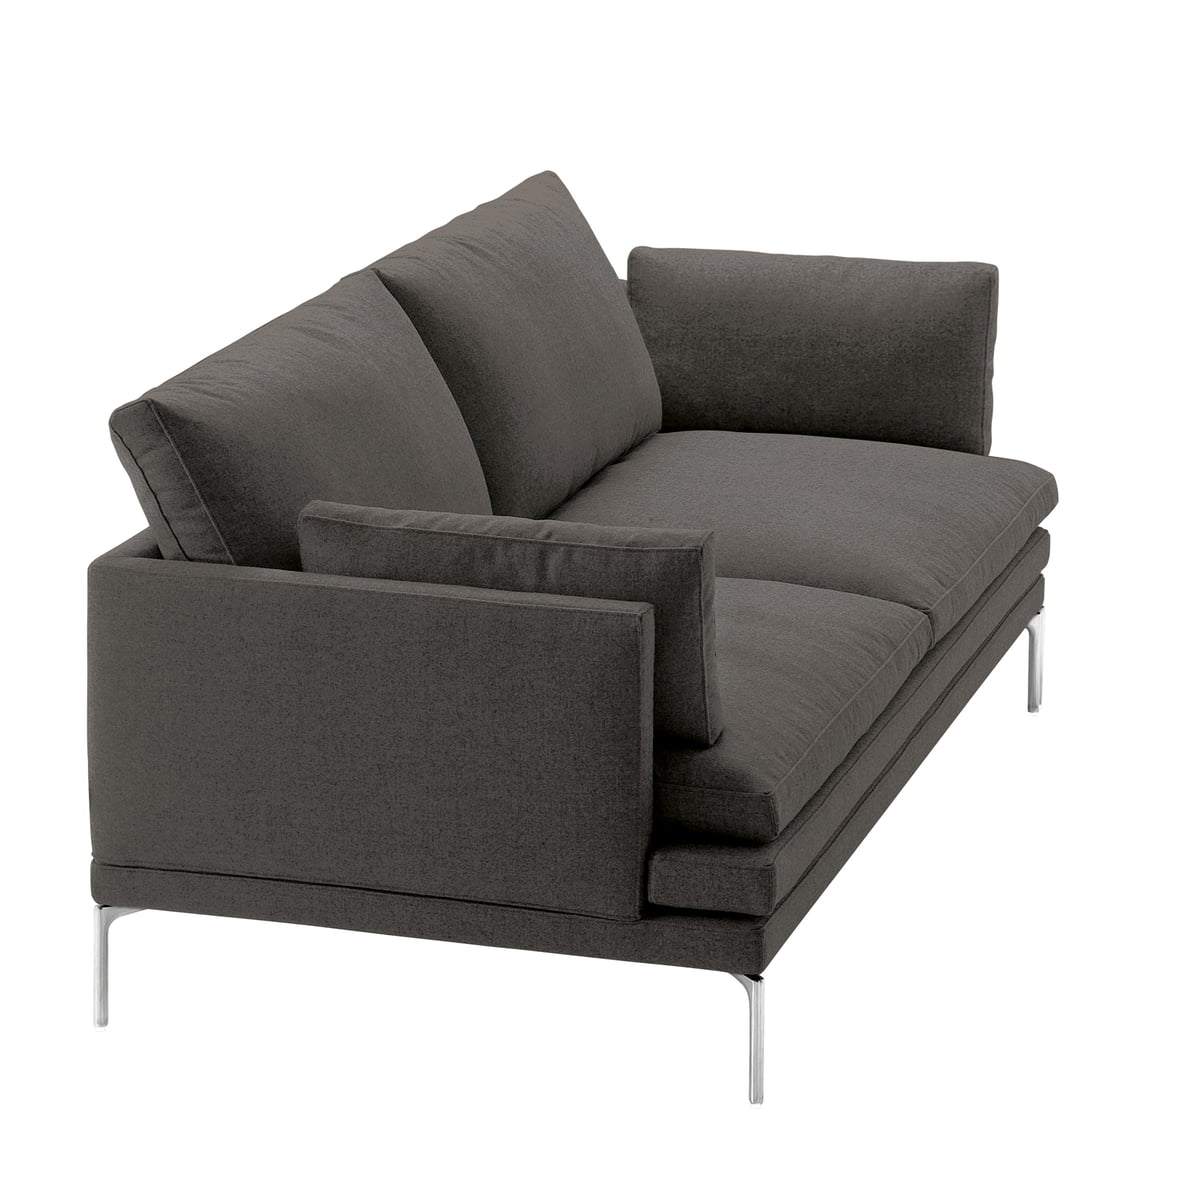 The william sofa by zanotta in the shop for Sofa 180 breit